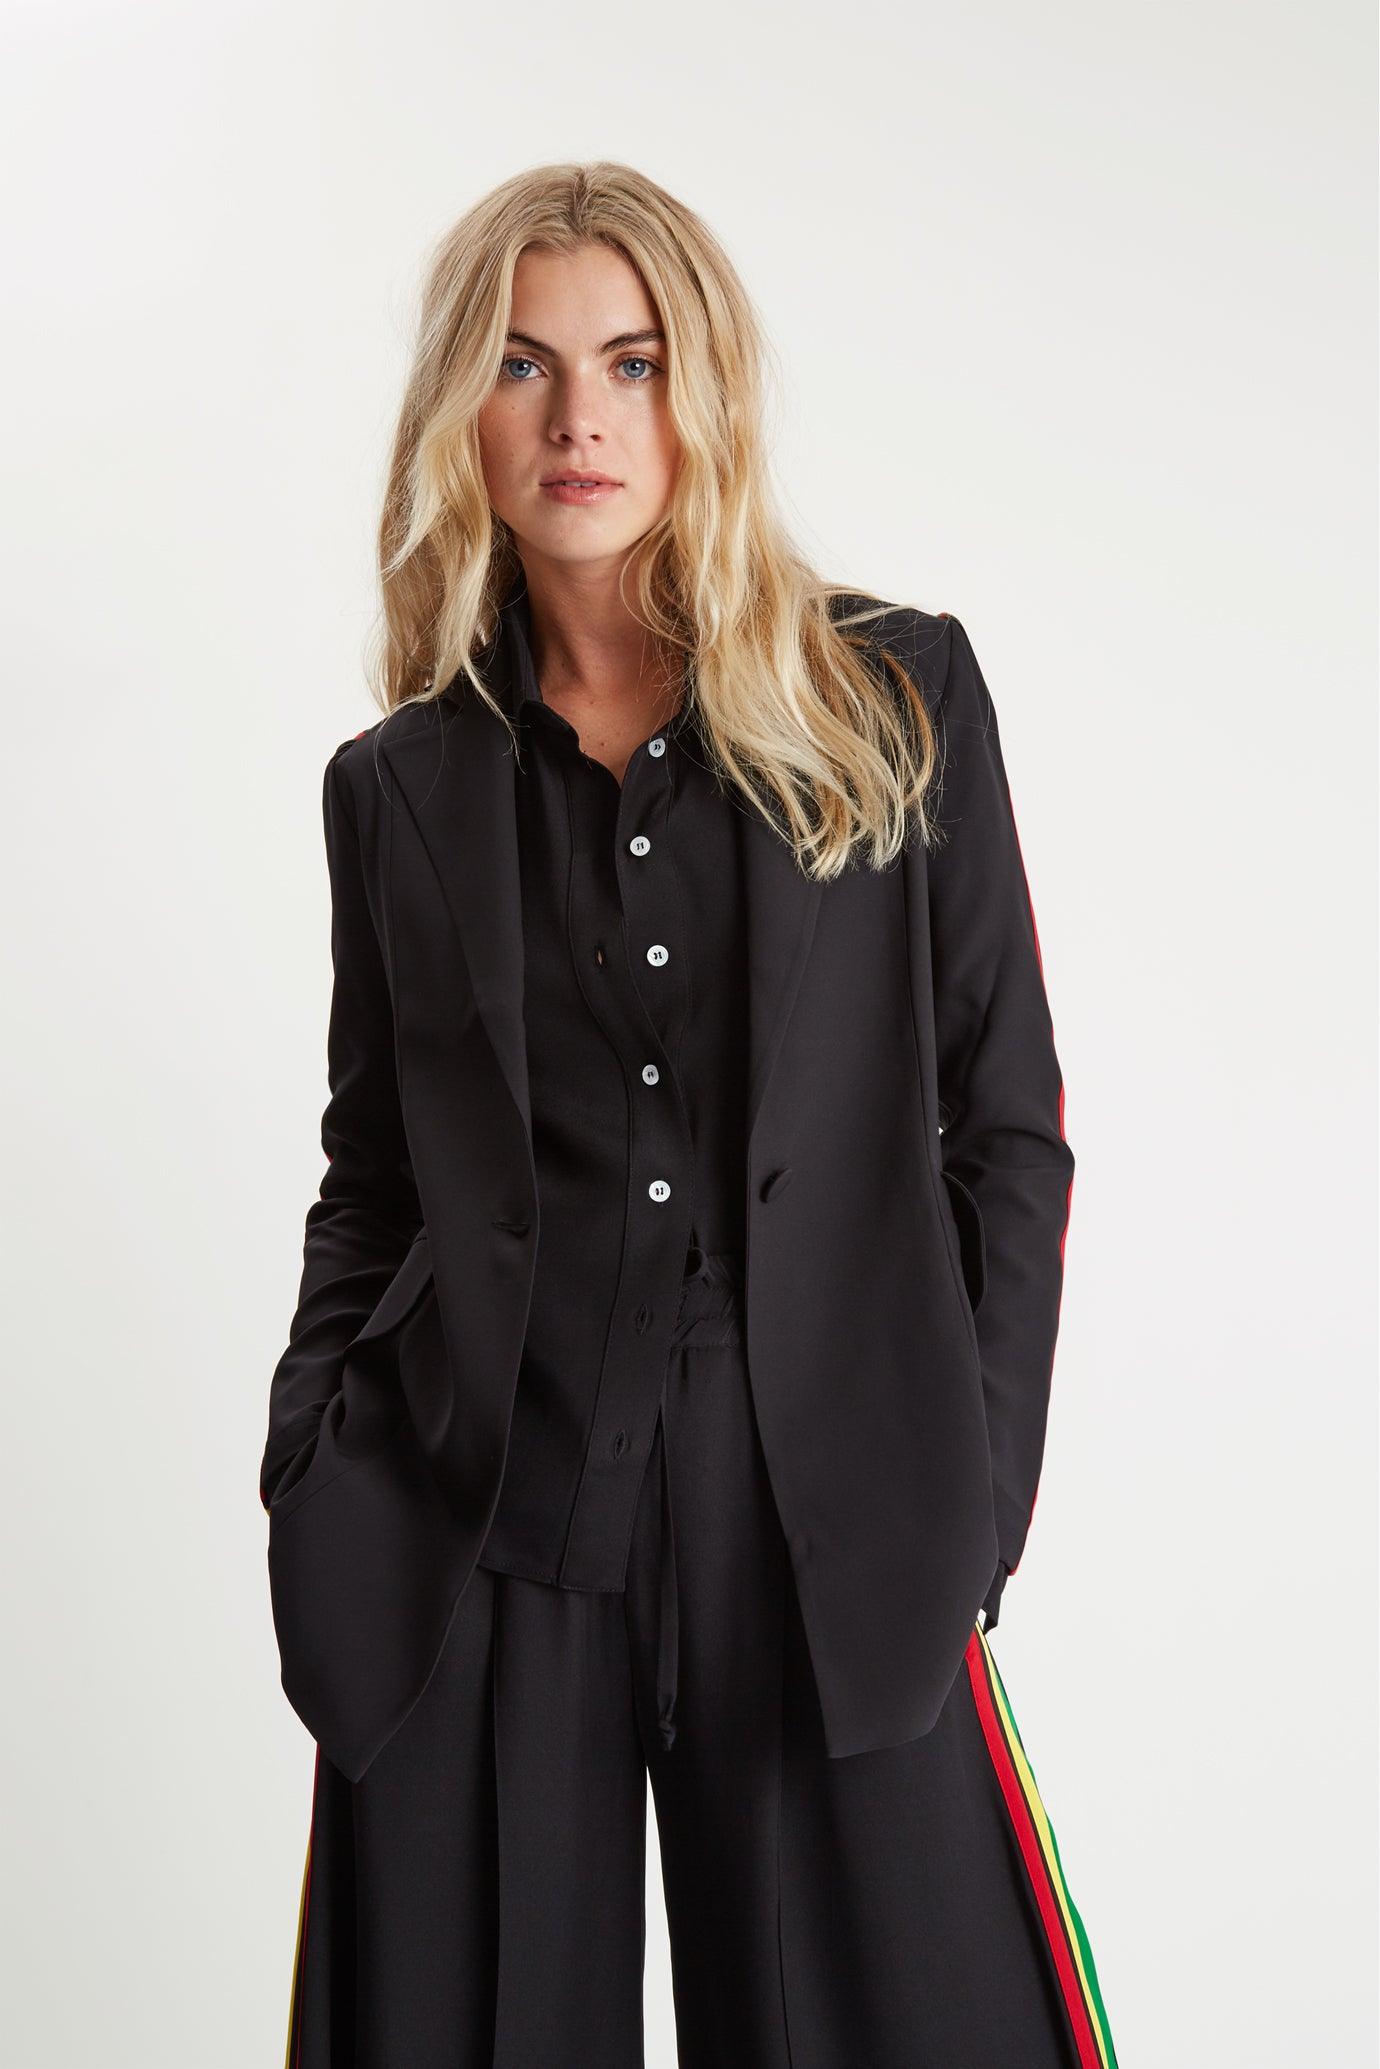 The Serena Suit Blazer - Black & Rasta/Jamaican Silk - SERENA BUTE